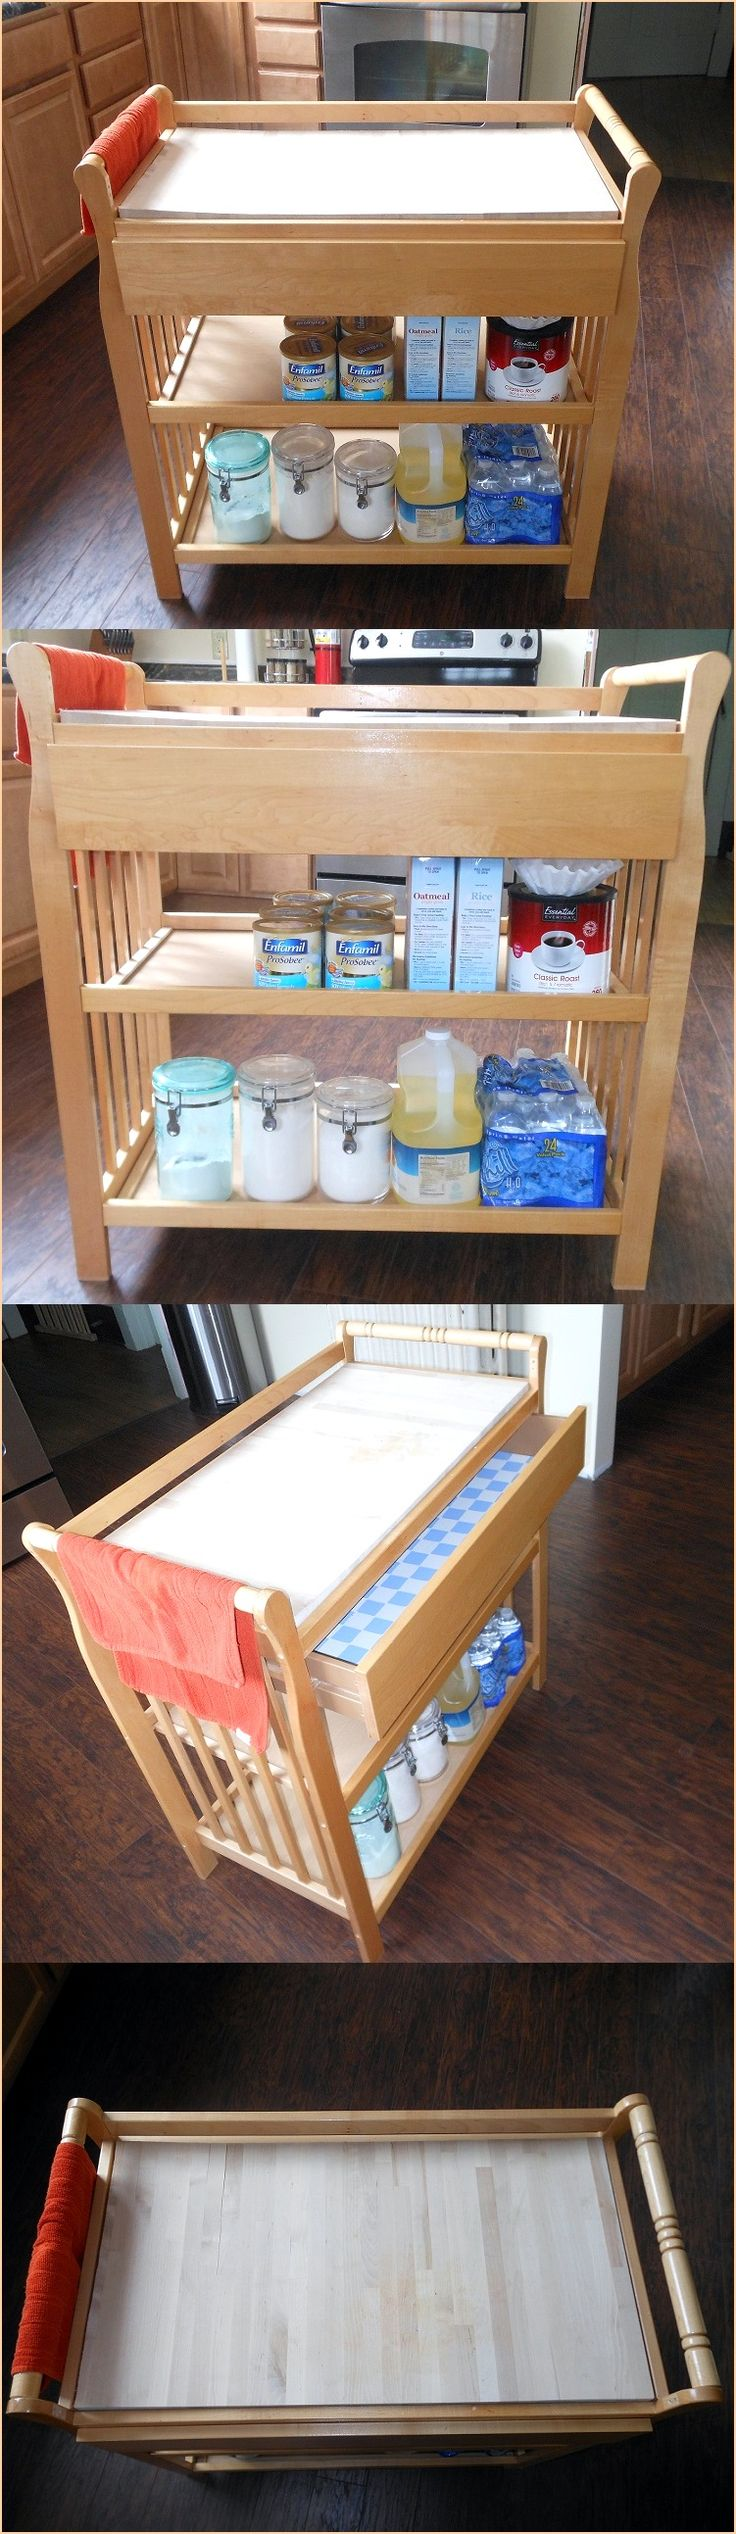 Pin by cori amelsberg on changing table upcycle pinterest for Diy cutting board storage